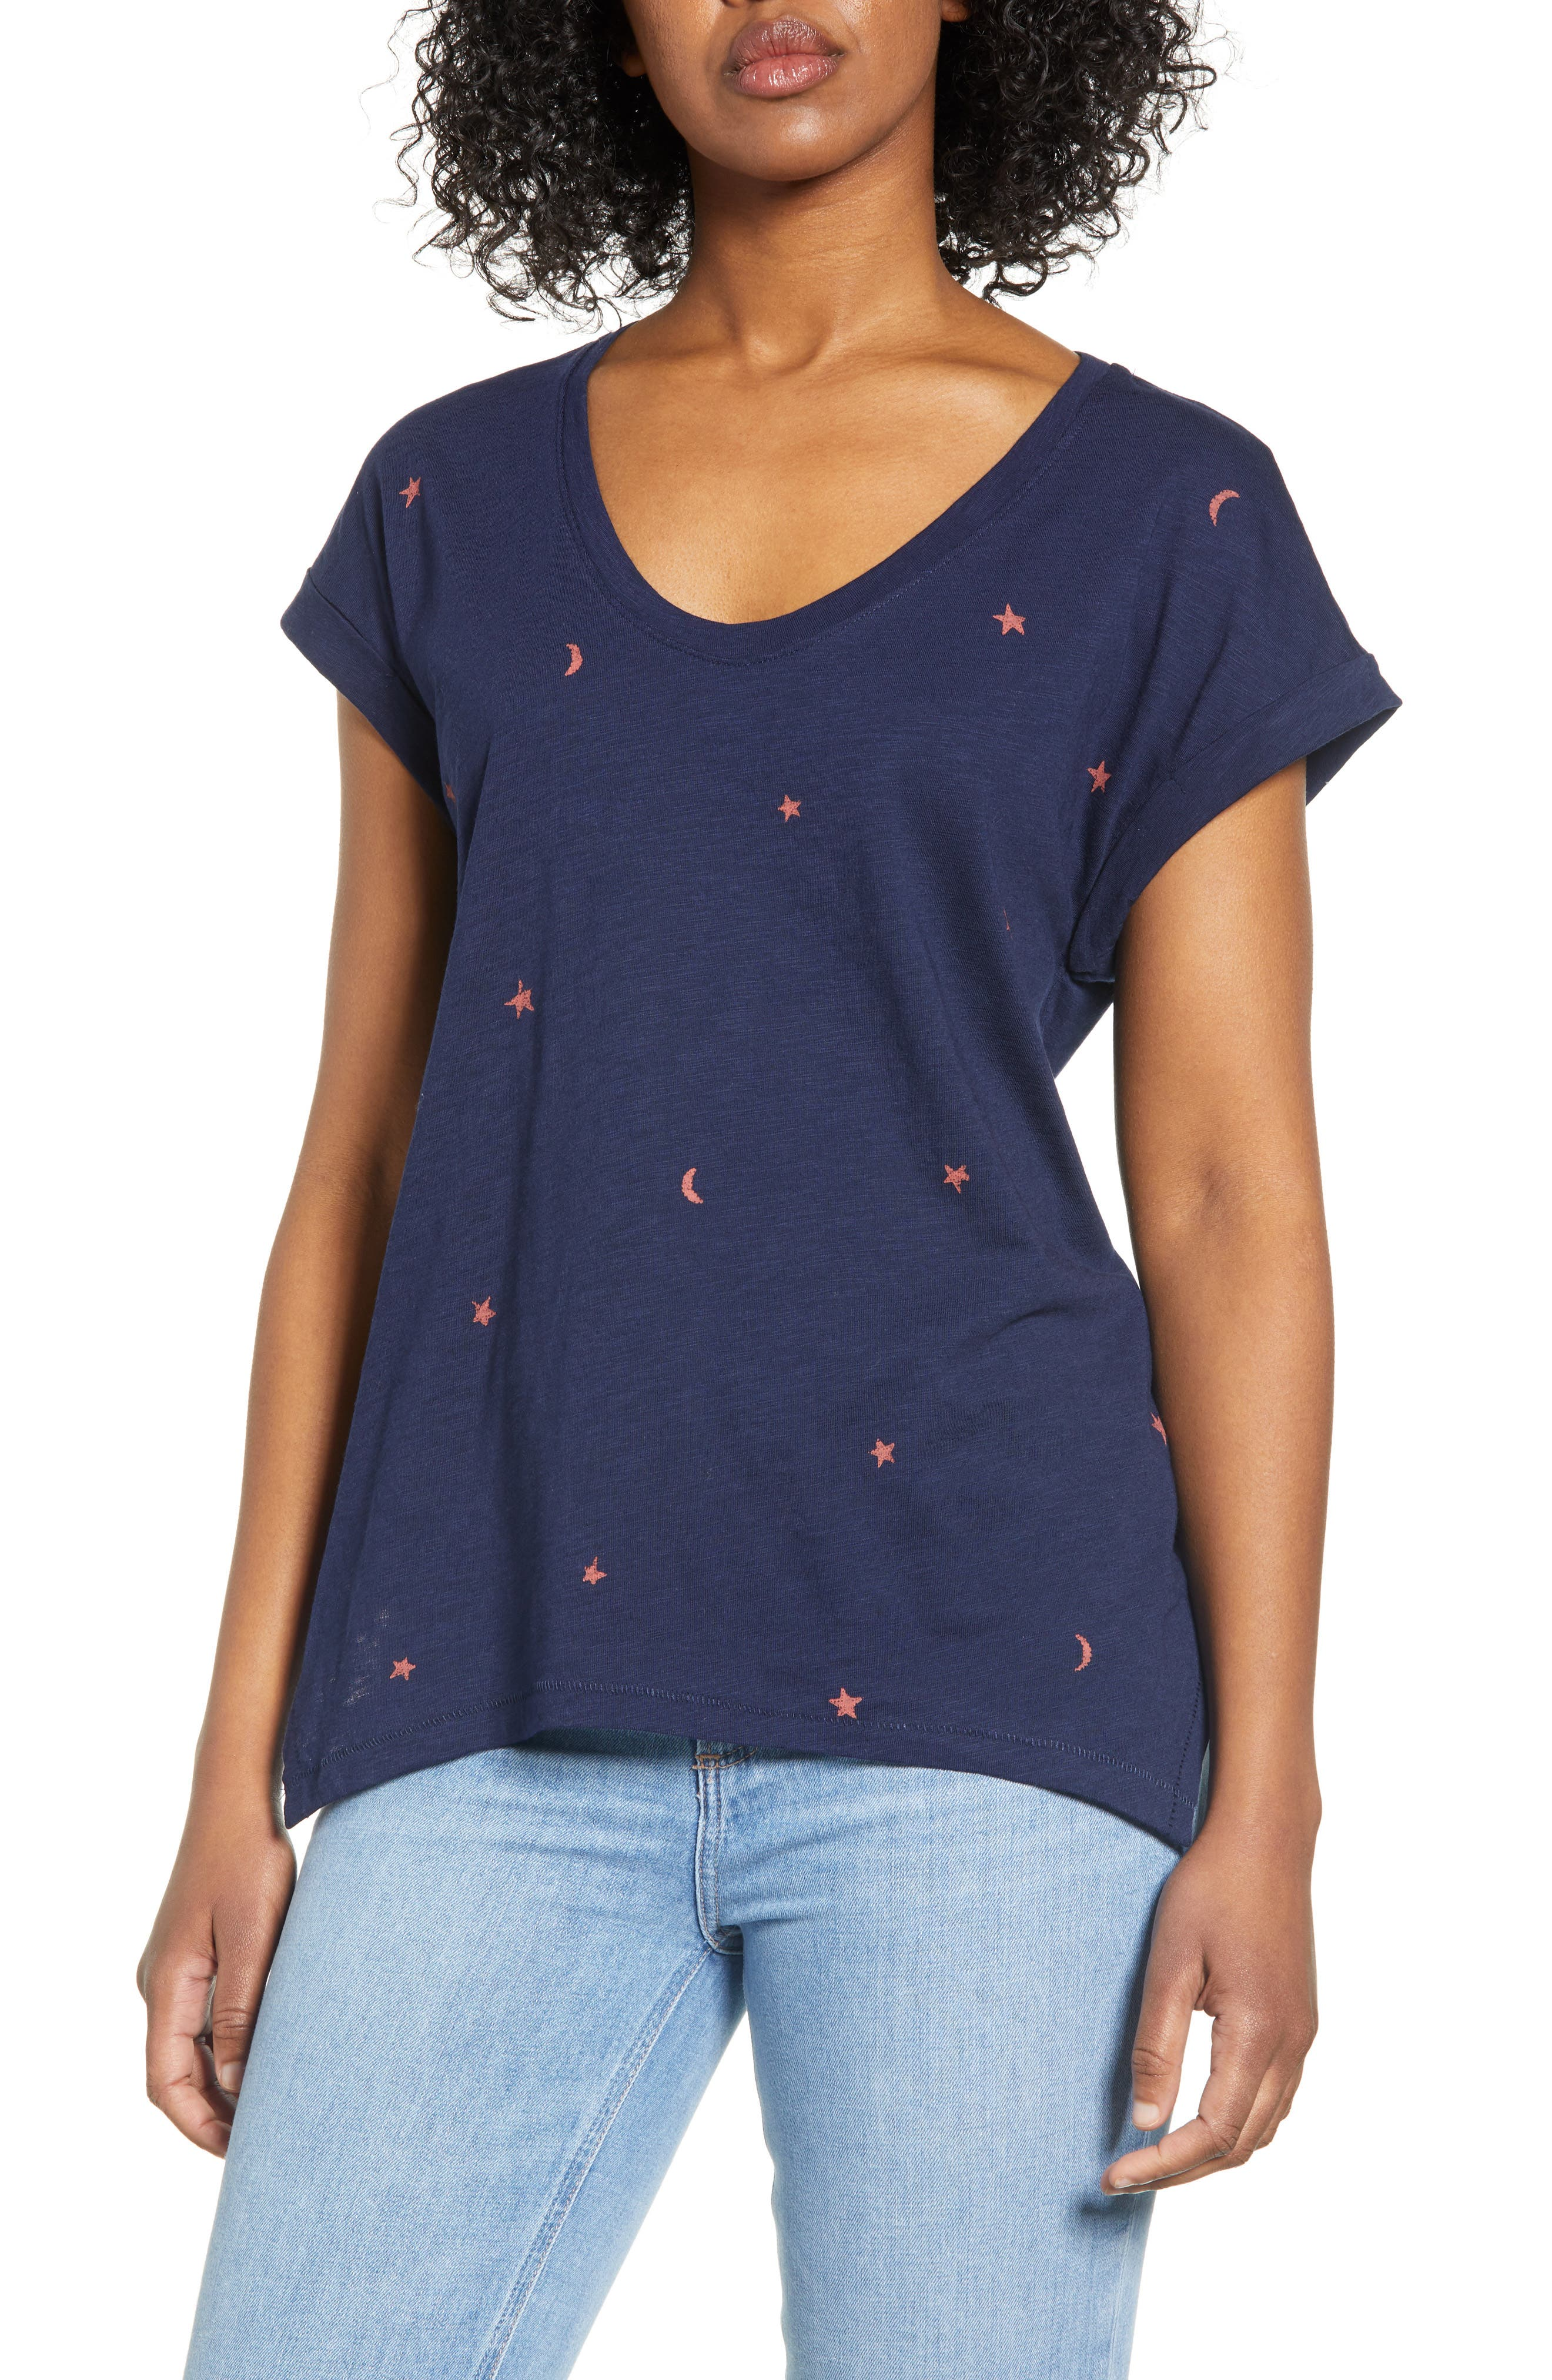 With a screenprinted pattern of moons and stars, this flowy, wear-everywhere tee is worth wishing for. Style Name: Wit & Wisdom Celestial Screen Print Cotton Blend Tee (Nordstrom Exclusive). Style Number: 5922248. Available in stores.